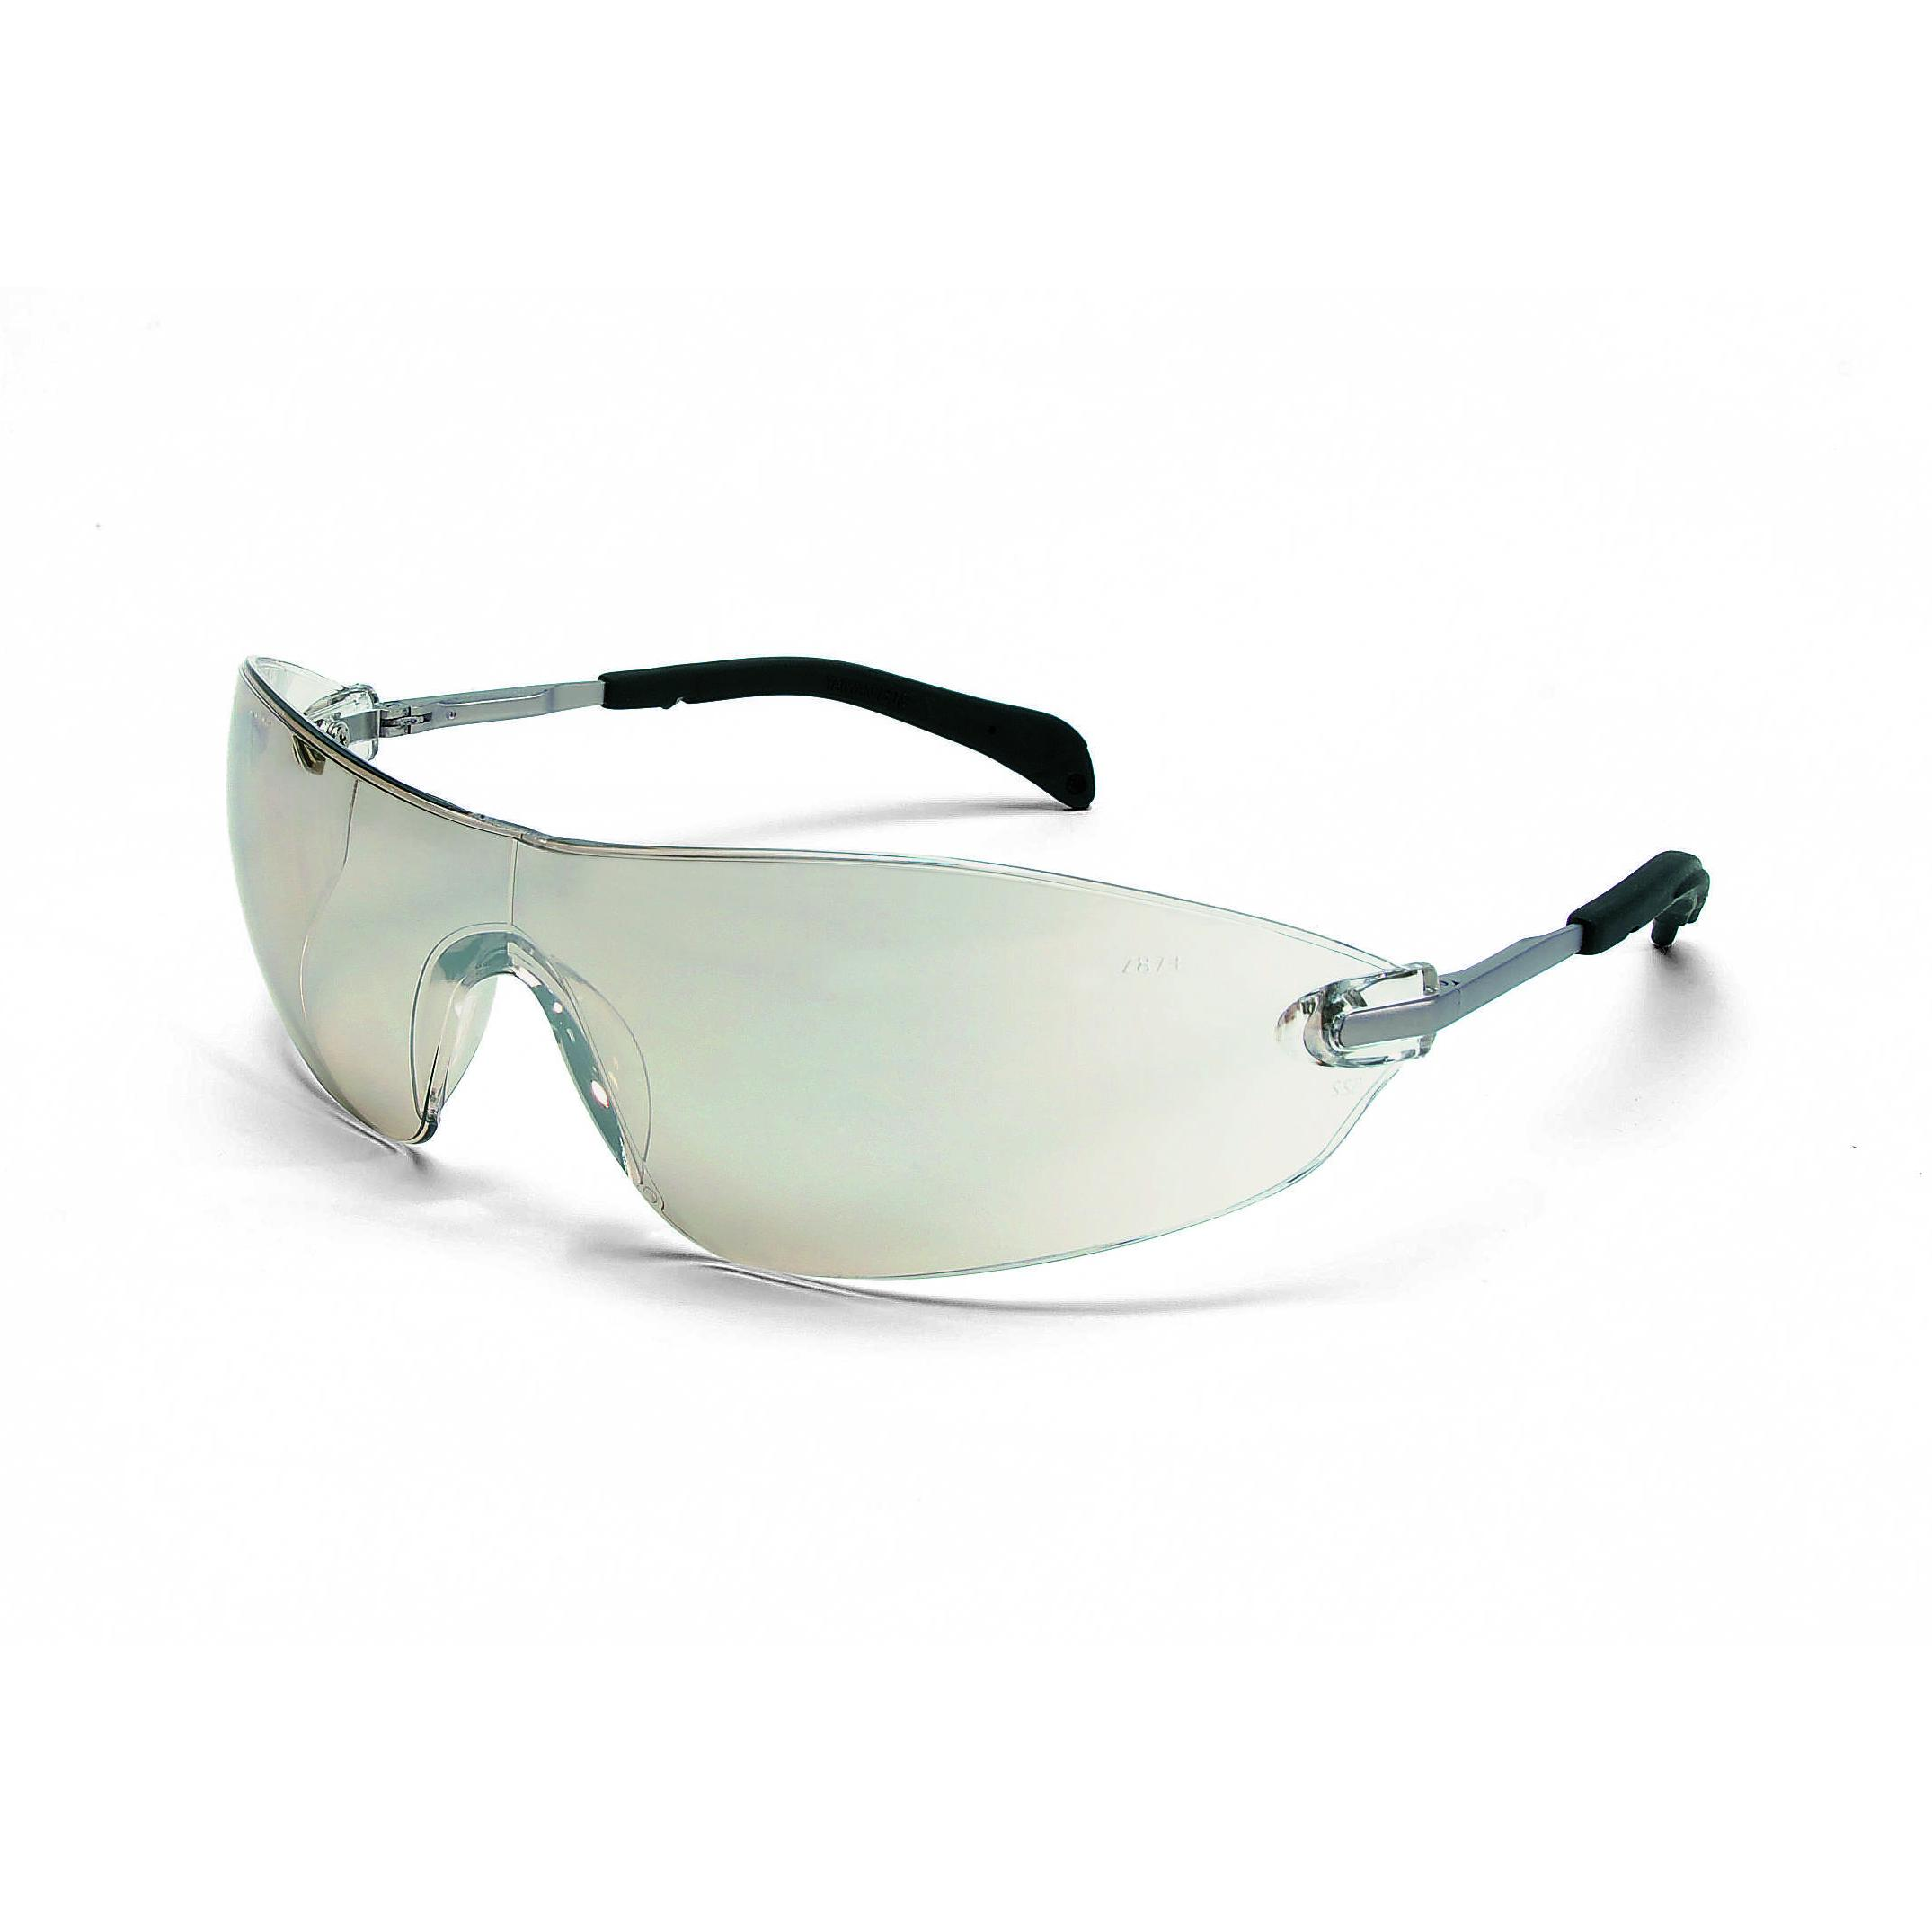 0e2ba51a9f2 Eyemate Universal Safety Glasses Side Shields « Heritage Malta